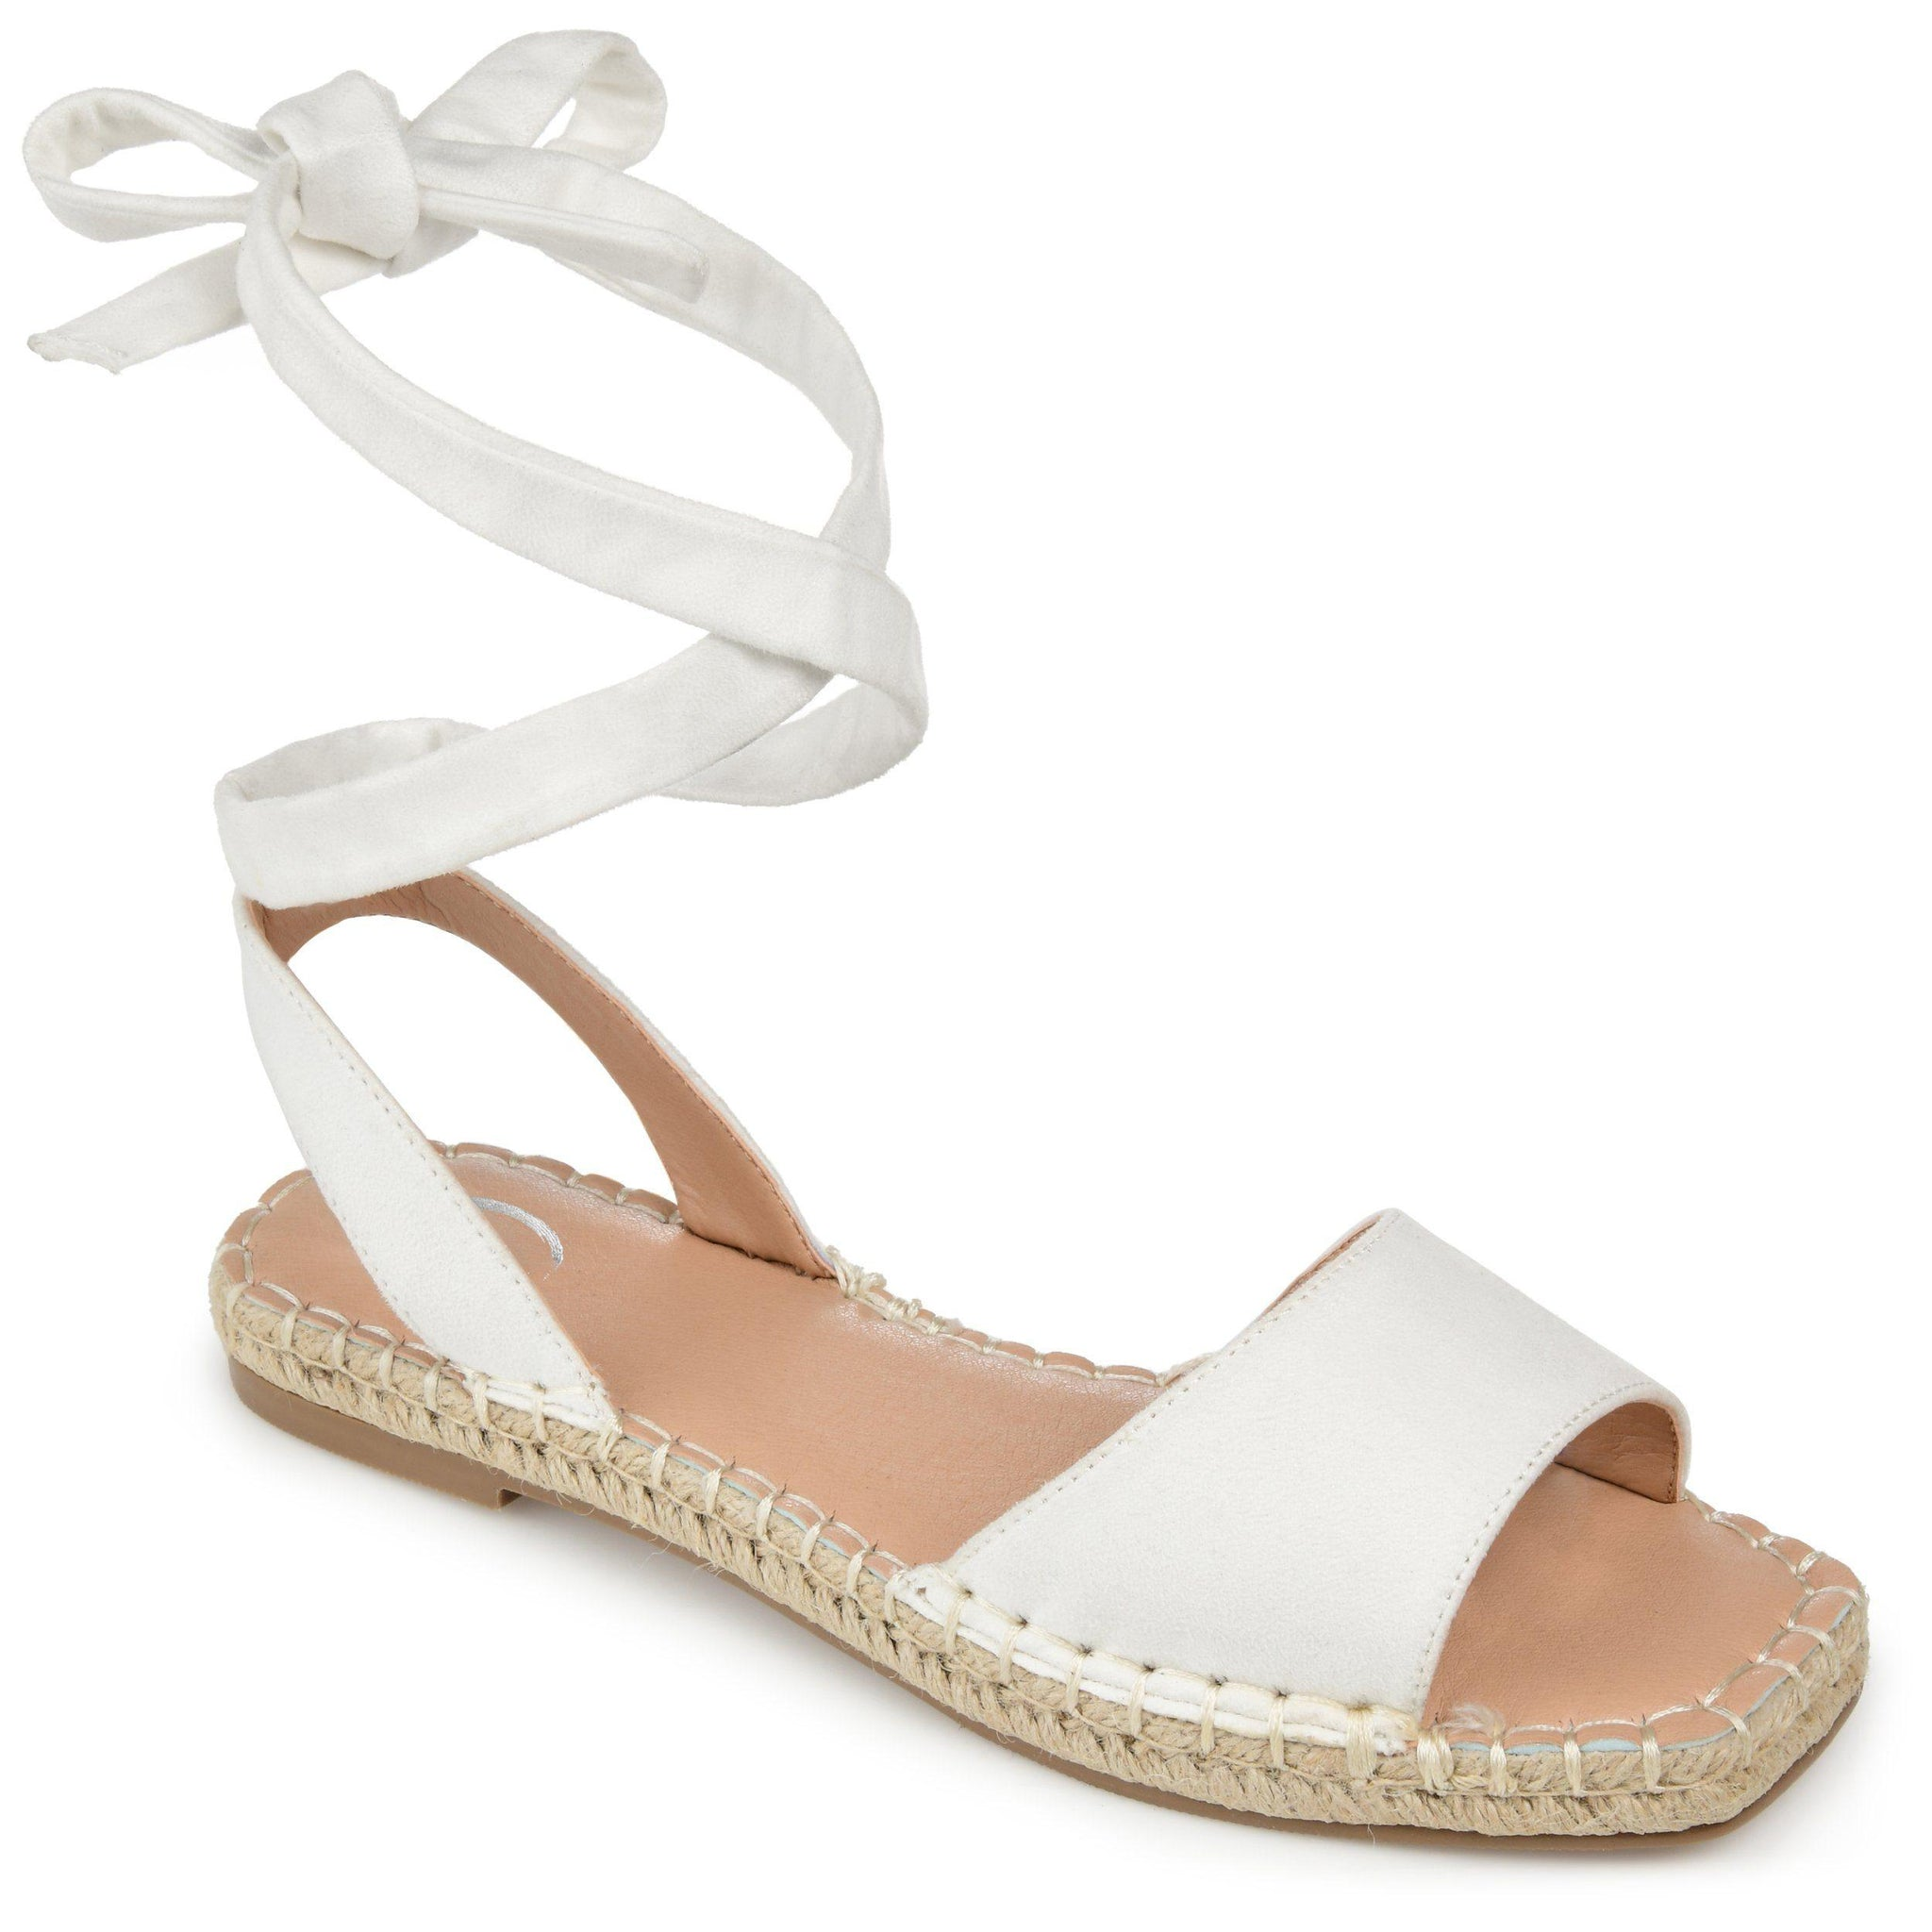 EMELIE SHOES Journee Collection White 6.5